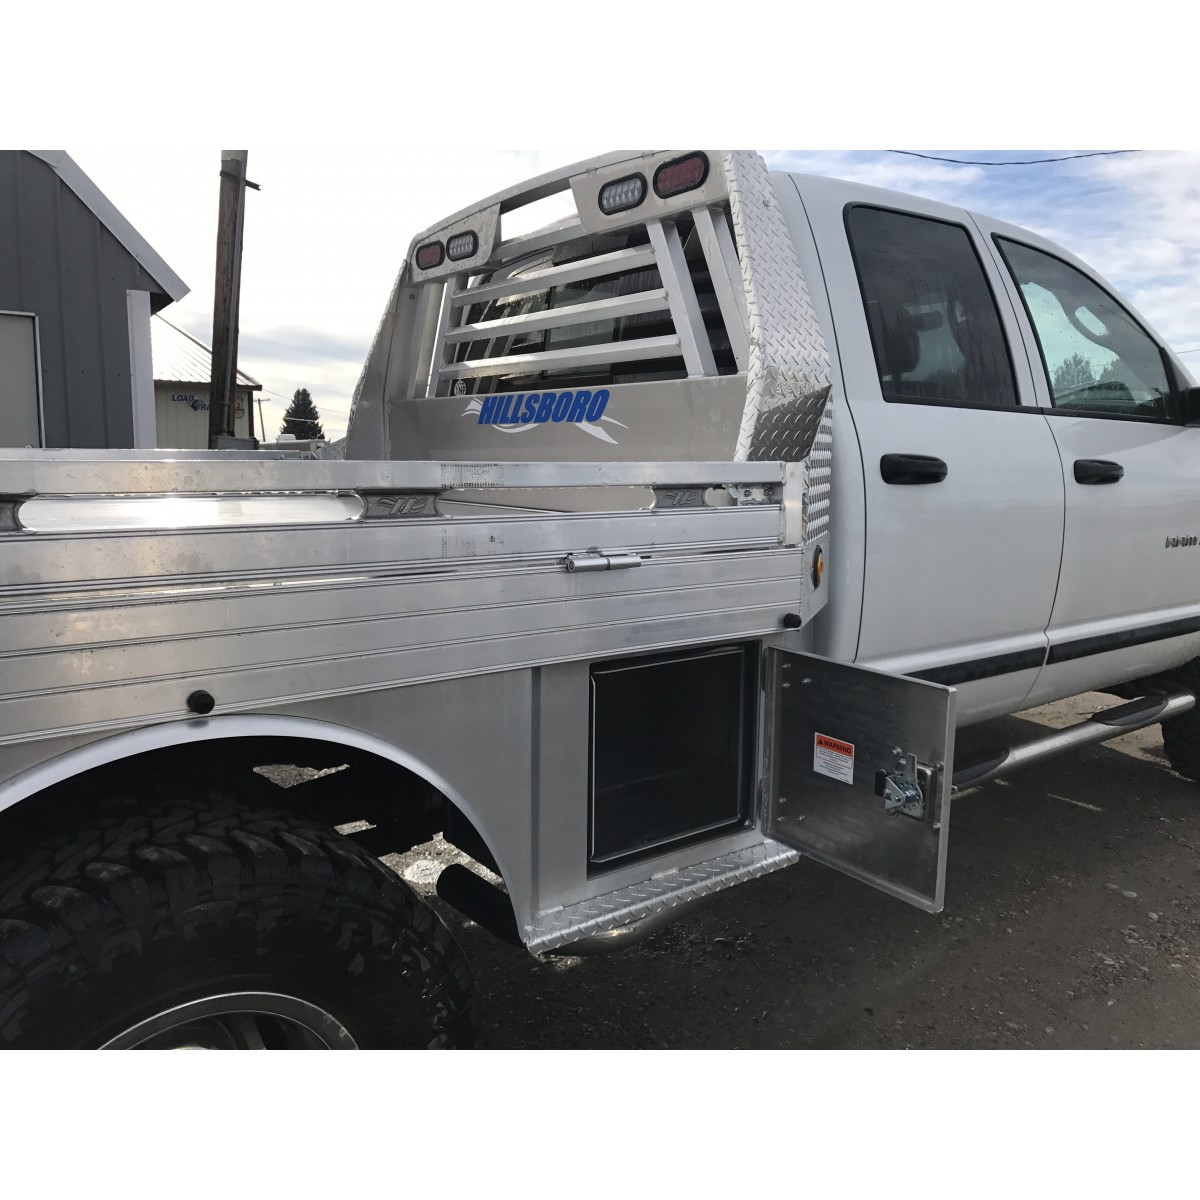 Pickup Bed Tool Boxes >> New Hillsboro 4000 Series Flatbed - Hillsboro - Pickup Flatbeds/Bumpers